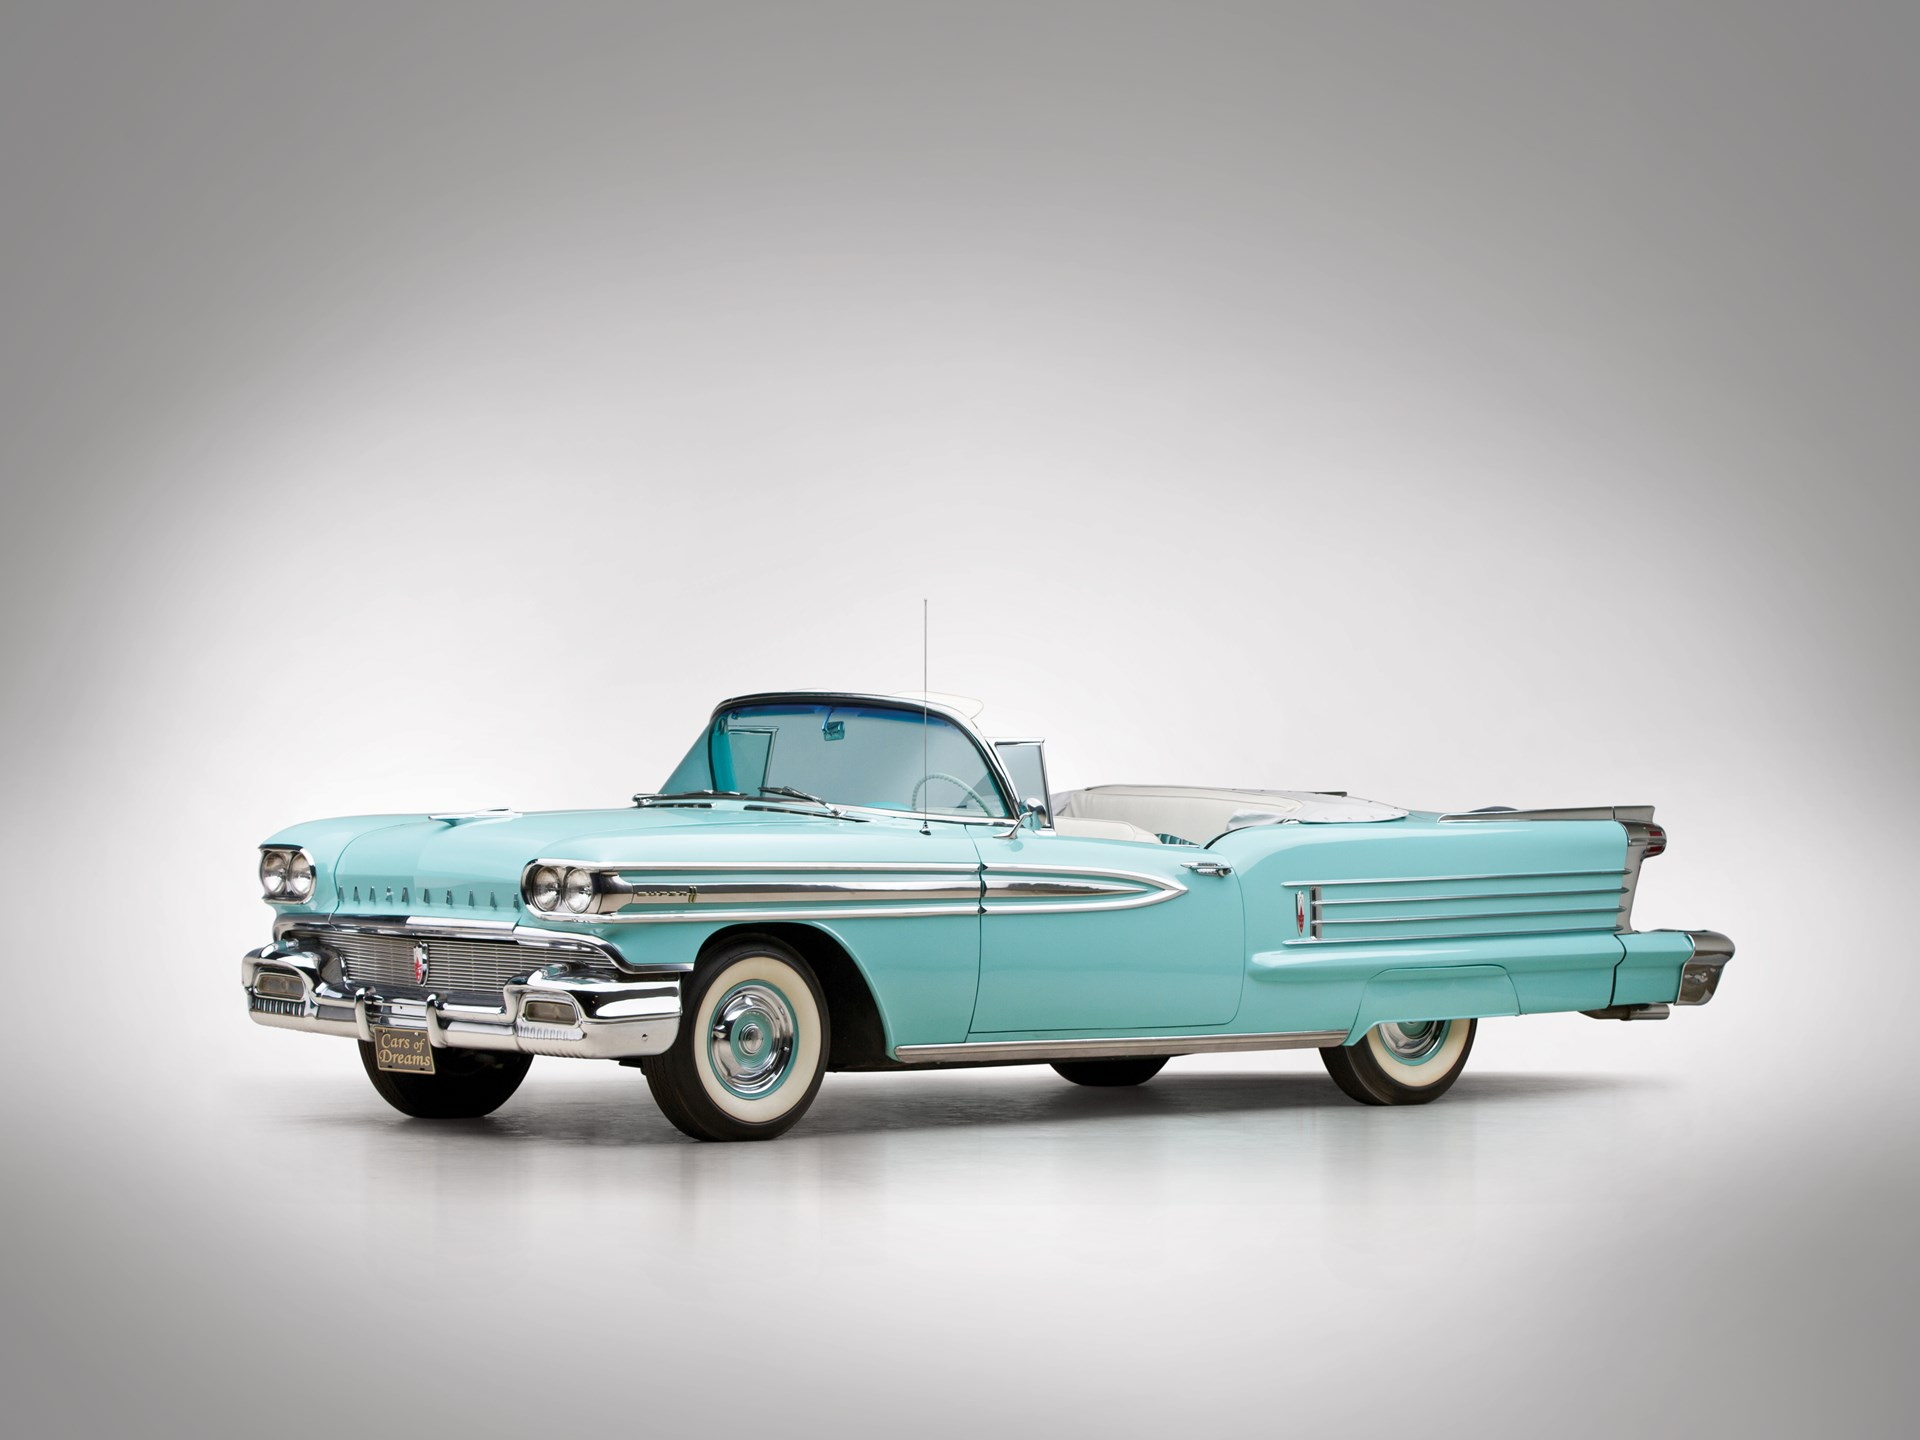 RM Sotheby's - 1958 Oldsmobile Super 88 Convertible | The John